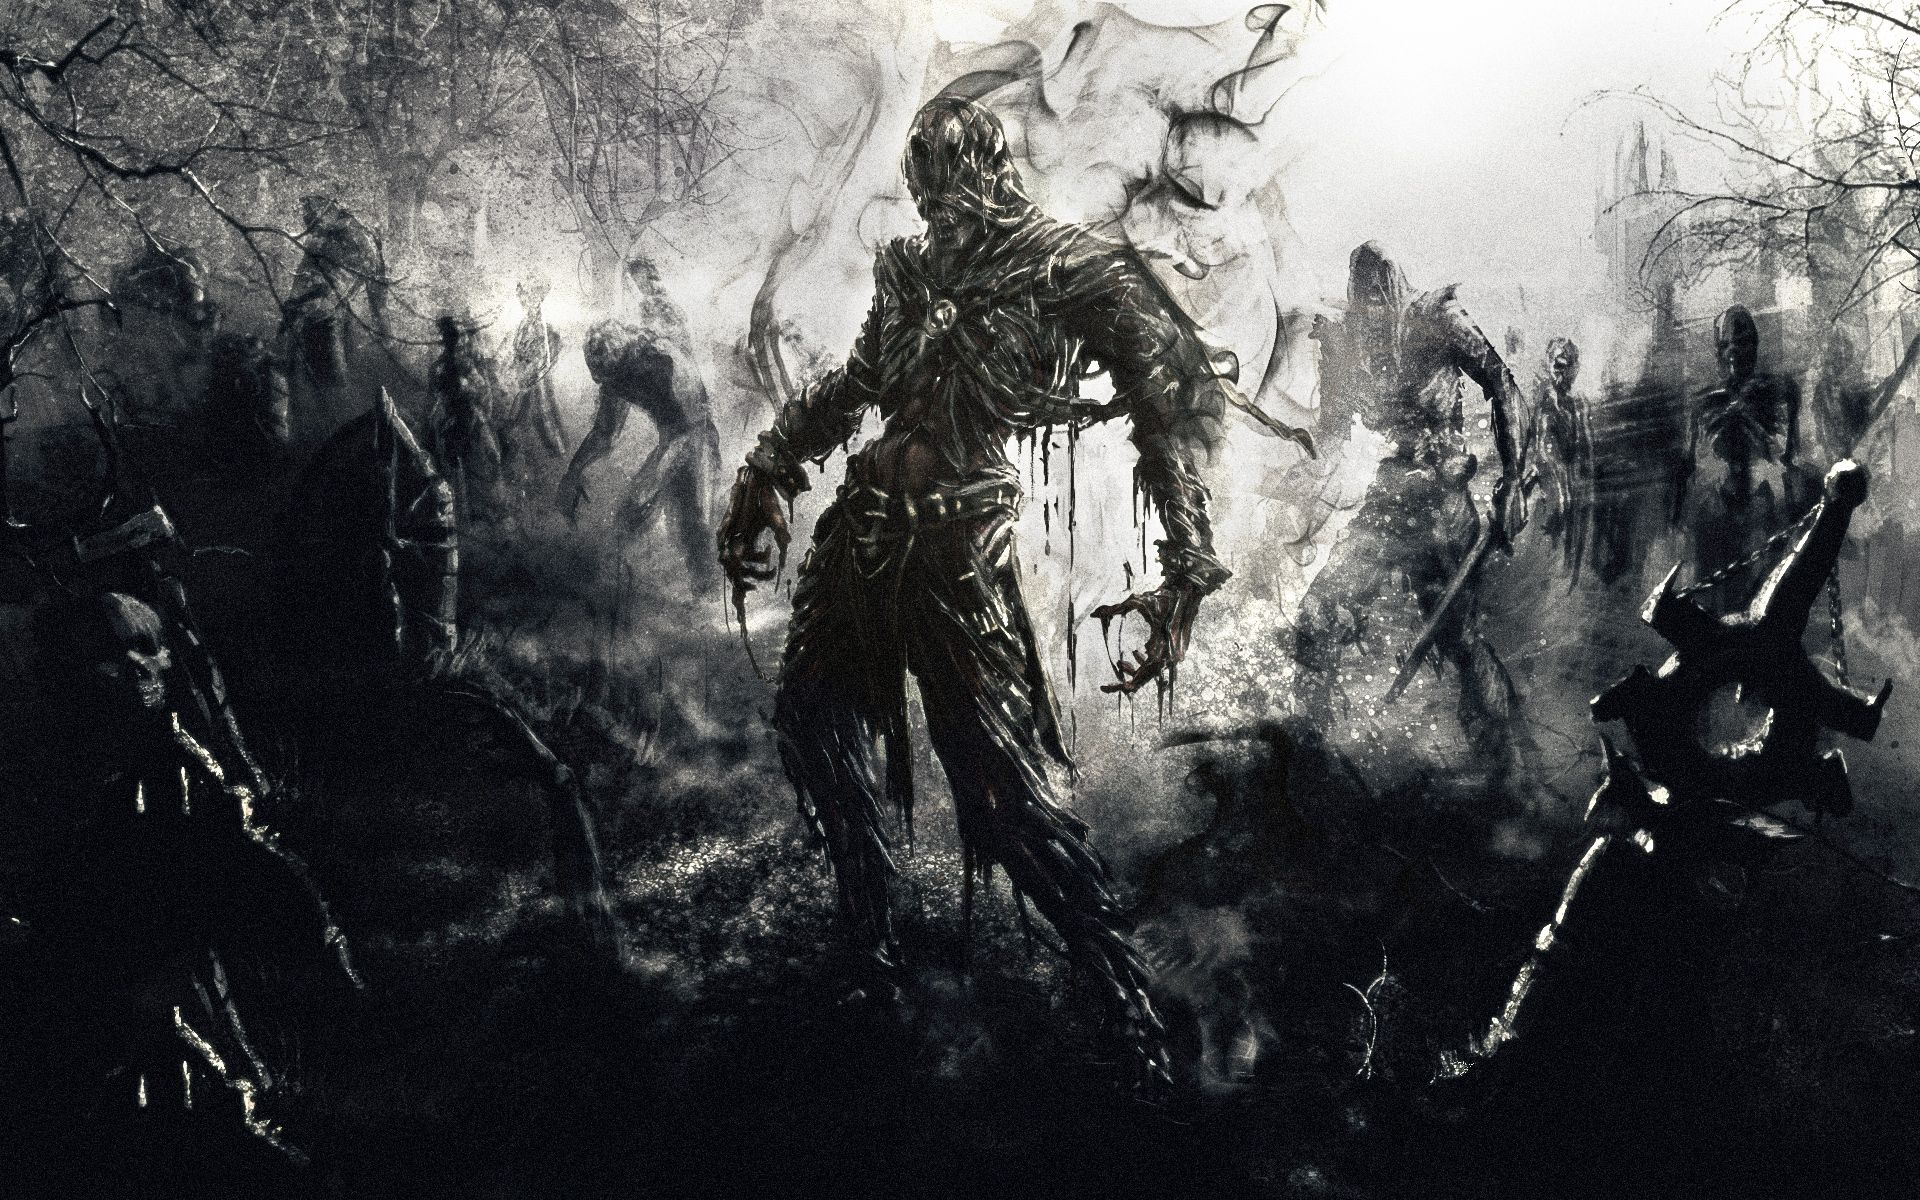 141670 download wallpaper Fantasy, Zombies, Picture, Drawing, Art screensavers and pictures for free